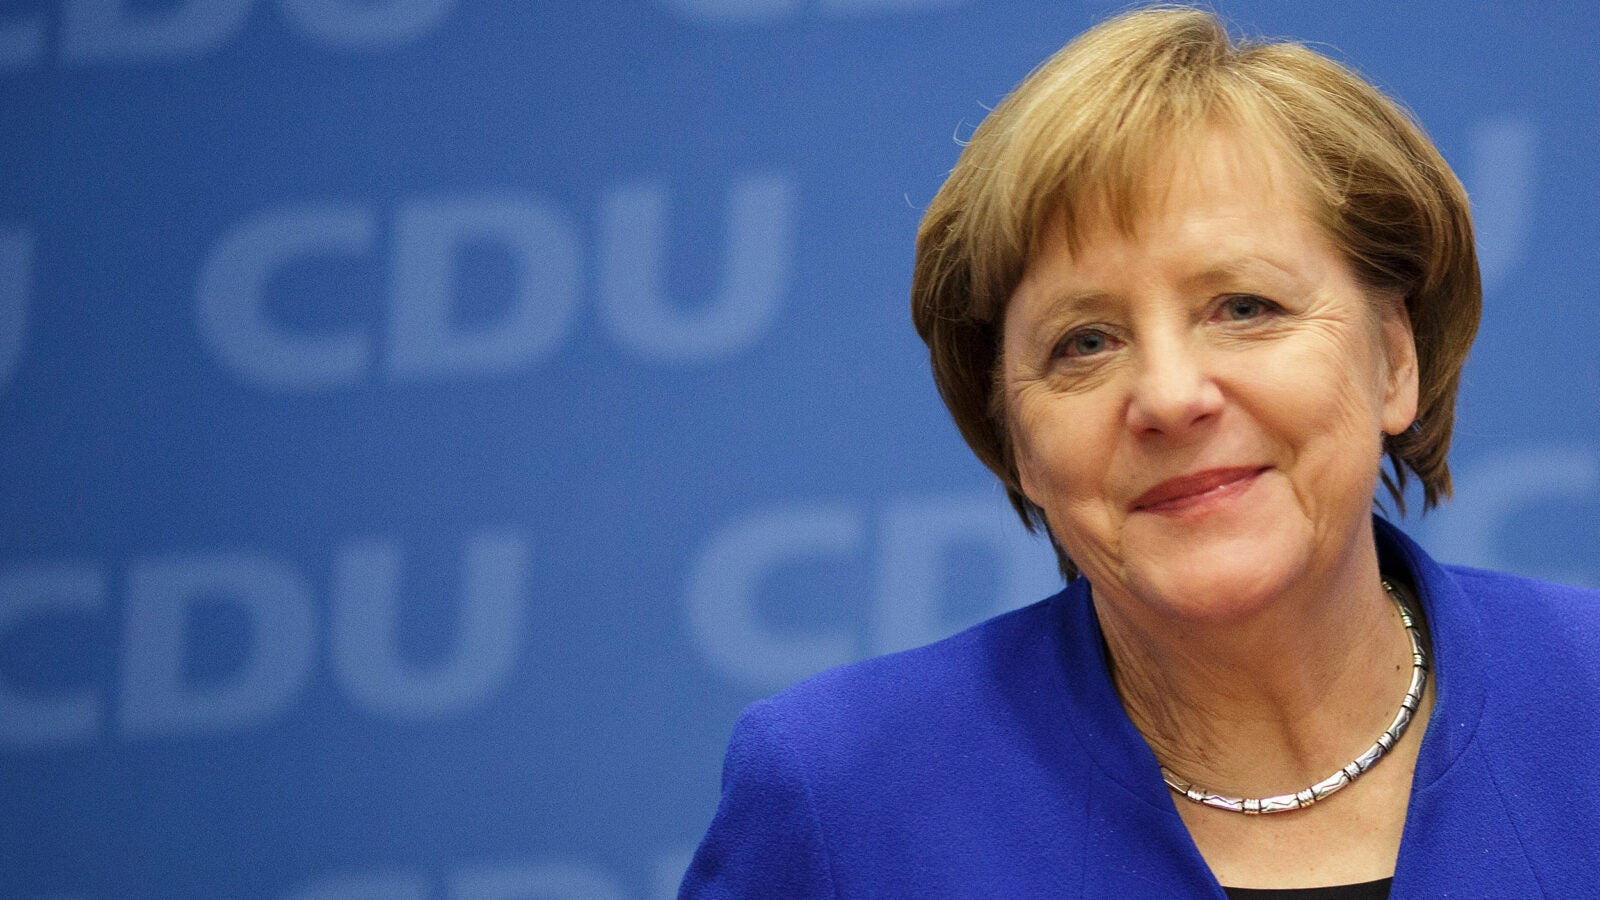 Those who have known Angela Merkel describe her rise to prominence – Harvard Gazette